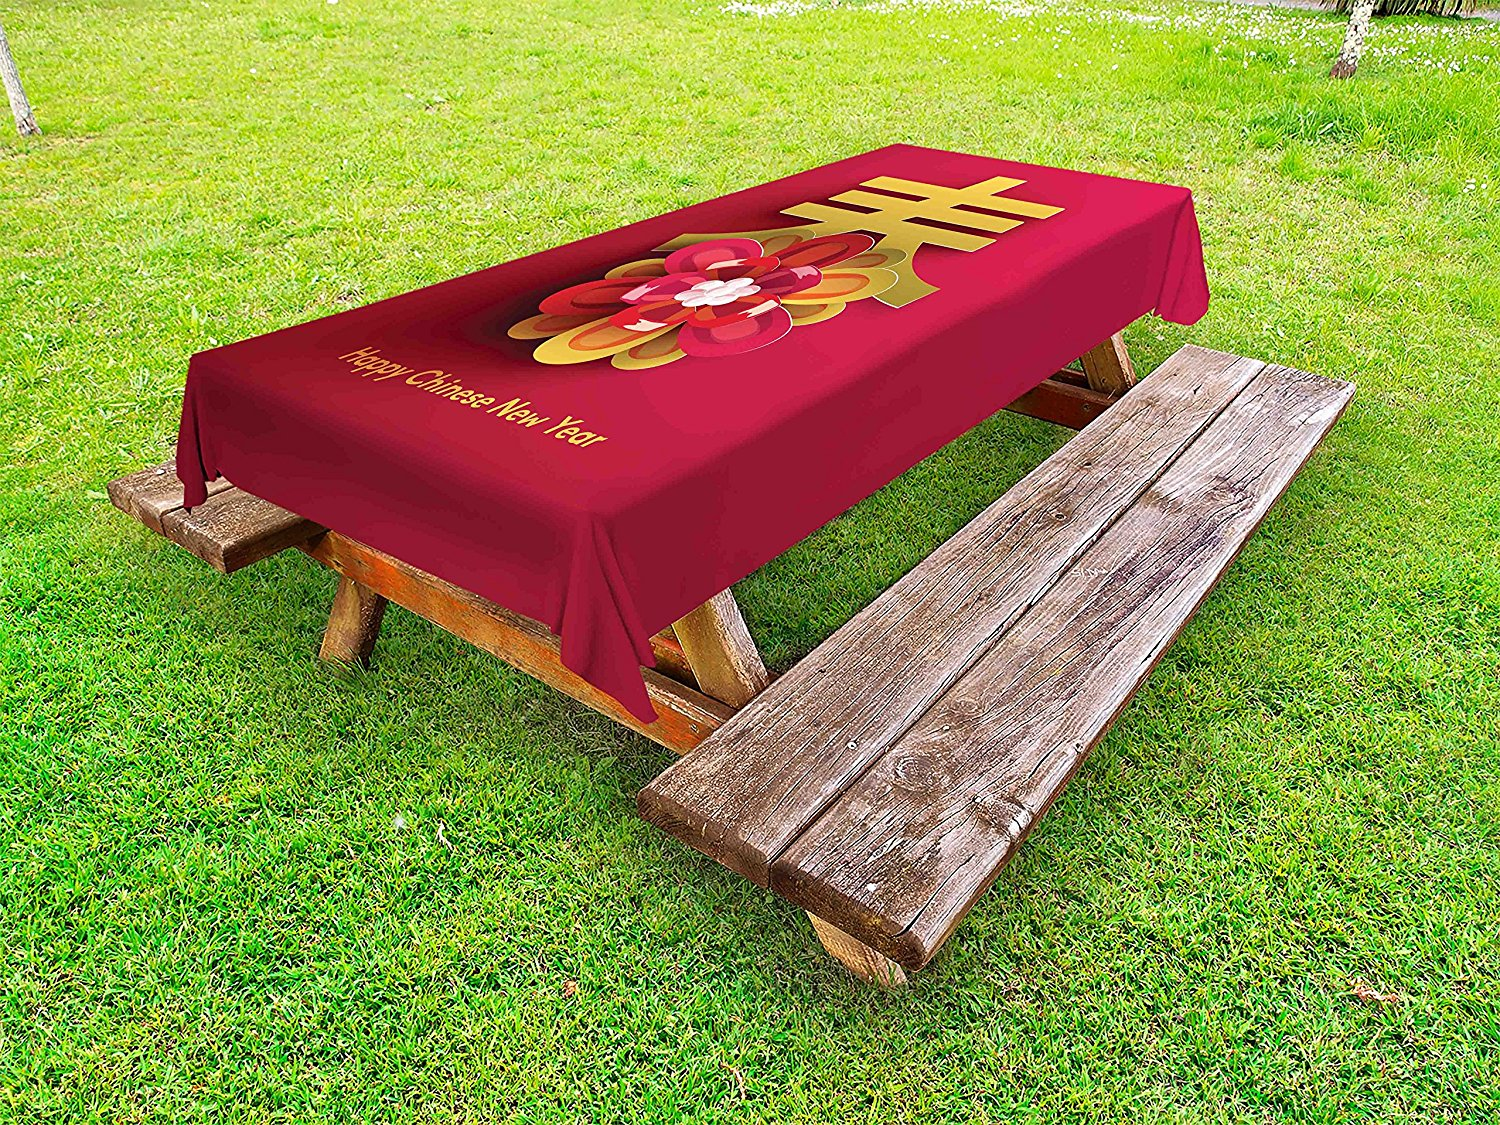 Ambesonne Chinese New Year Outdoor Tablecloth, Lunar Festival Theme with a Flower Motif and Chinese Letter on Pink, Decorative Washable Picnic Table Cloth, 58 X 84 Inches, Magenta and Gold